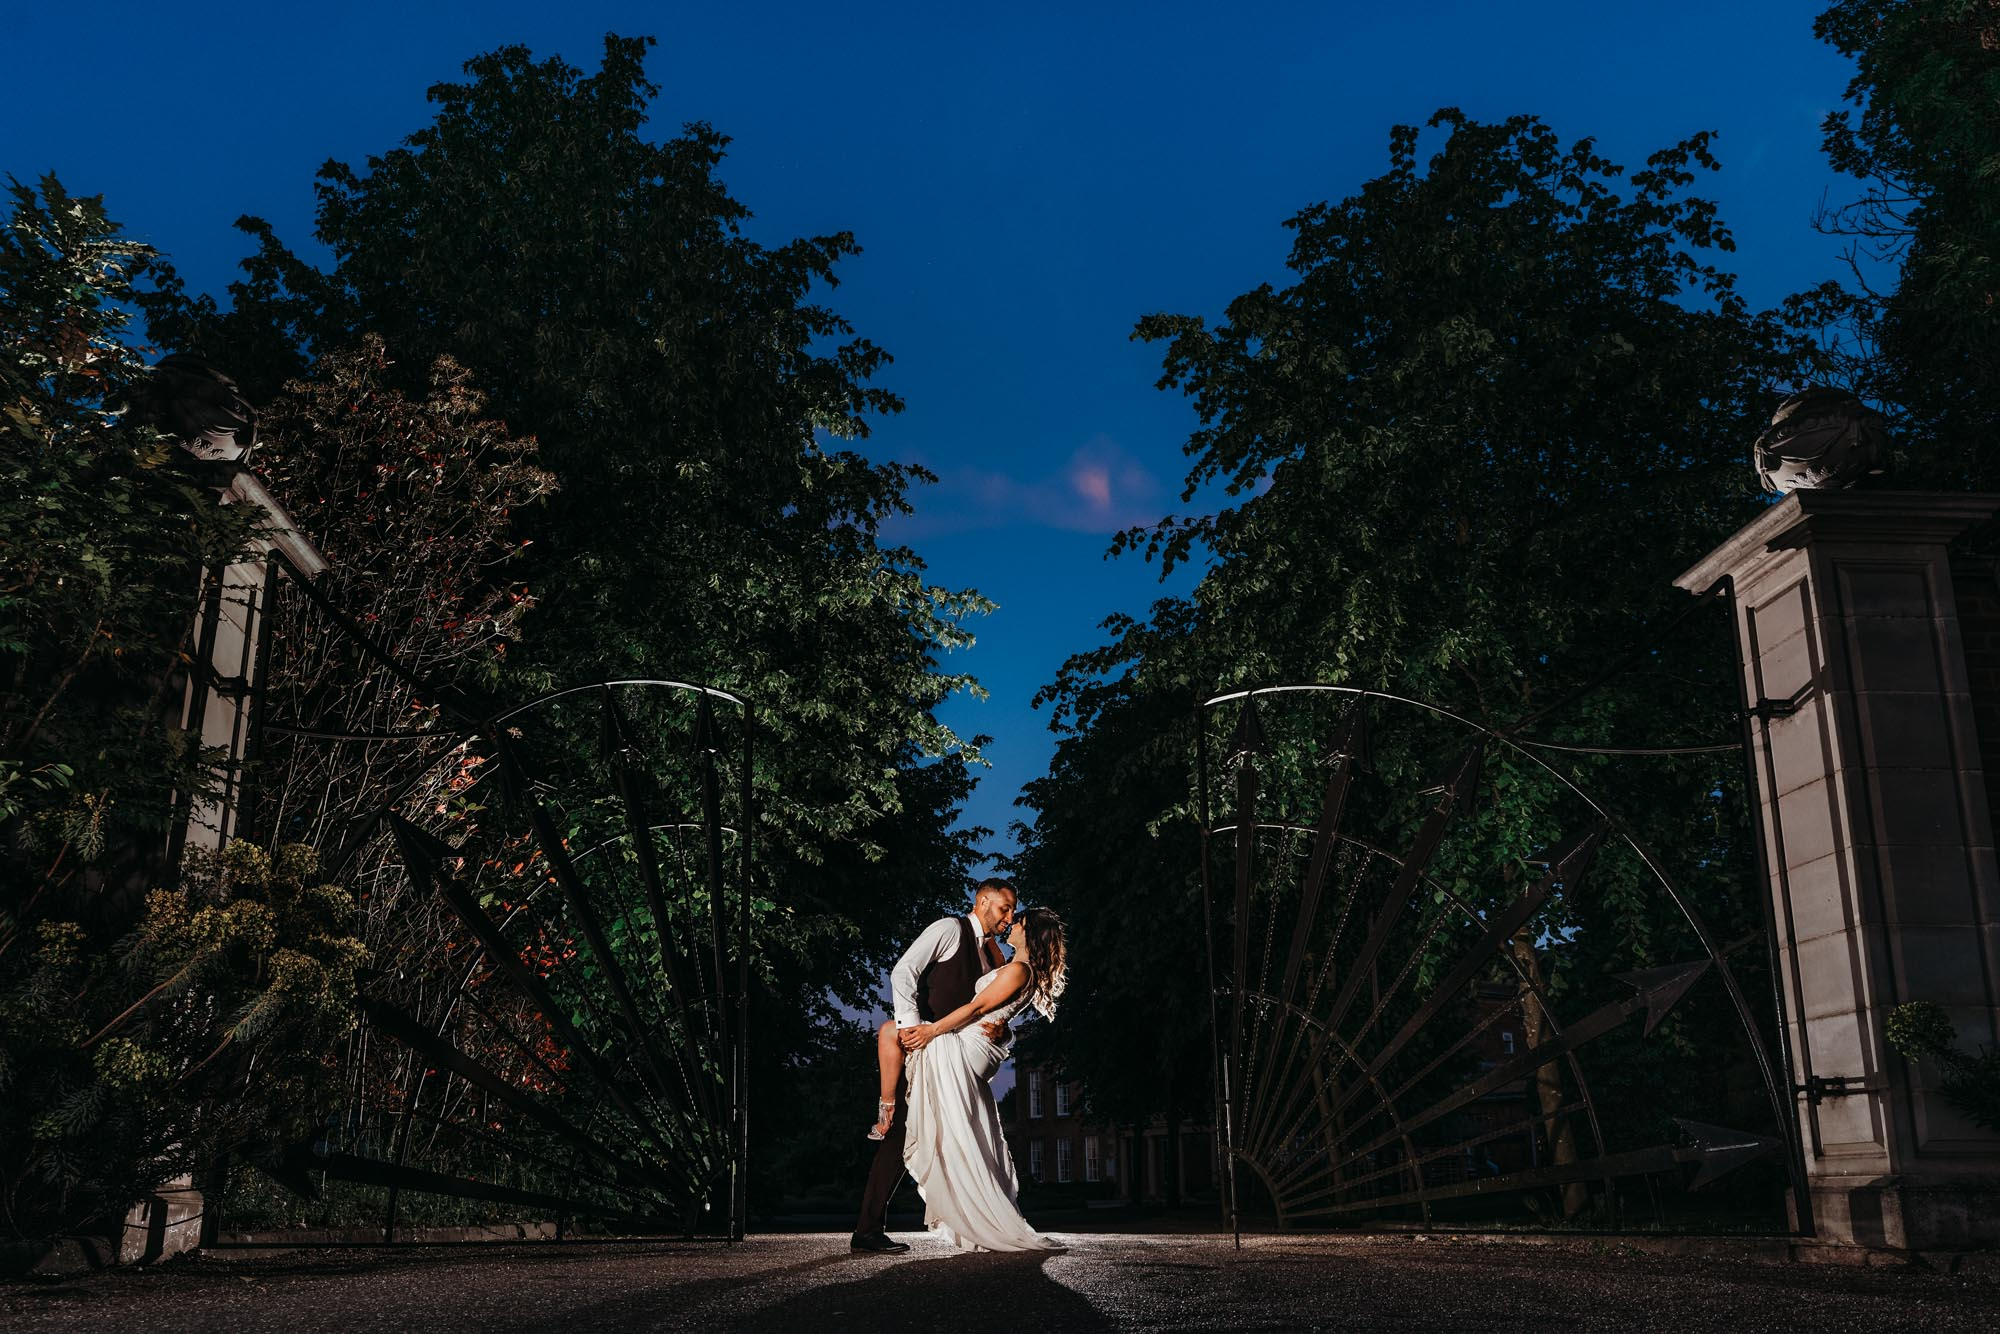 Wedding photograph of groom dipping the bride at the front gates outside Colwick Hall in Nottingham. Beautifully lit with a flash at the front so the sky is blue and the hall behind them.